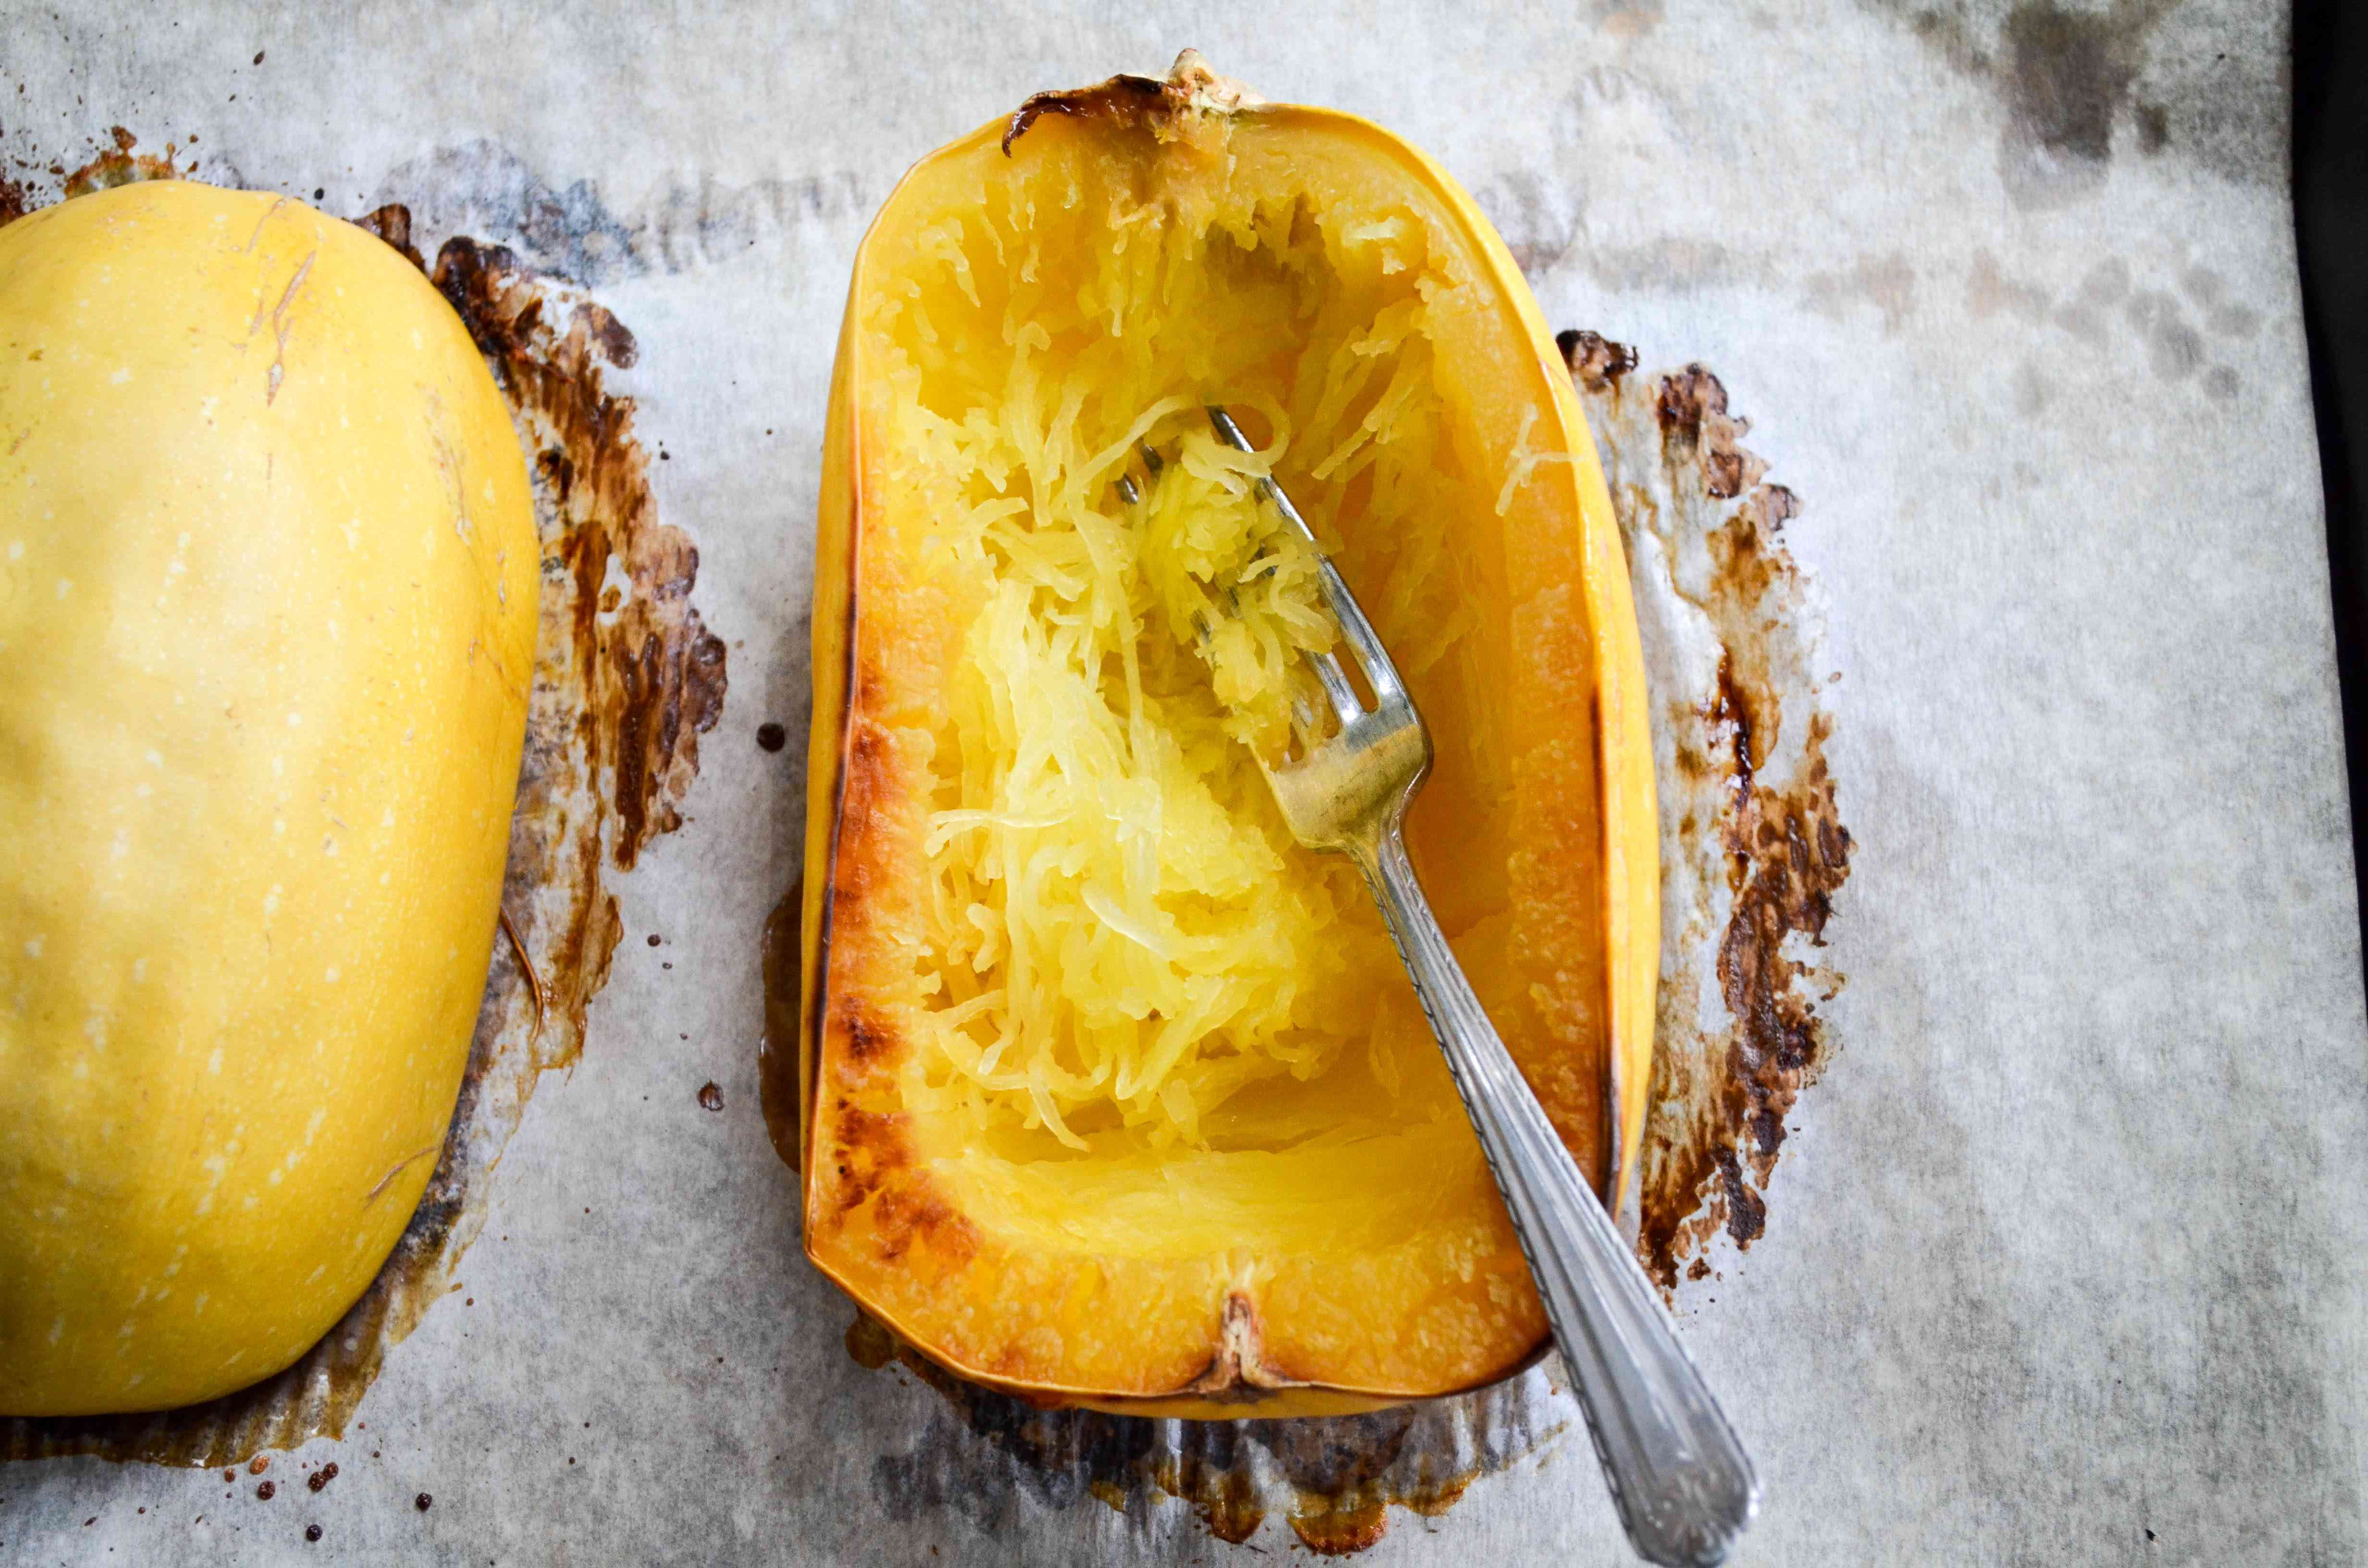 Use fork to remove strands from spaghetti squash